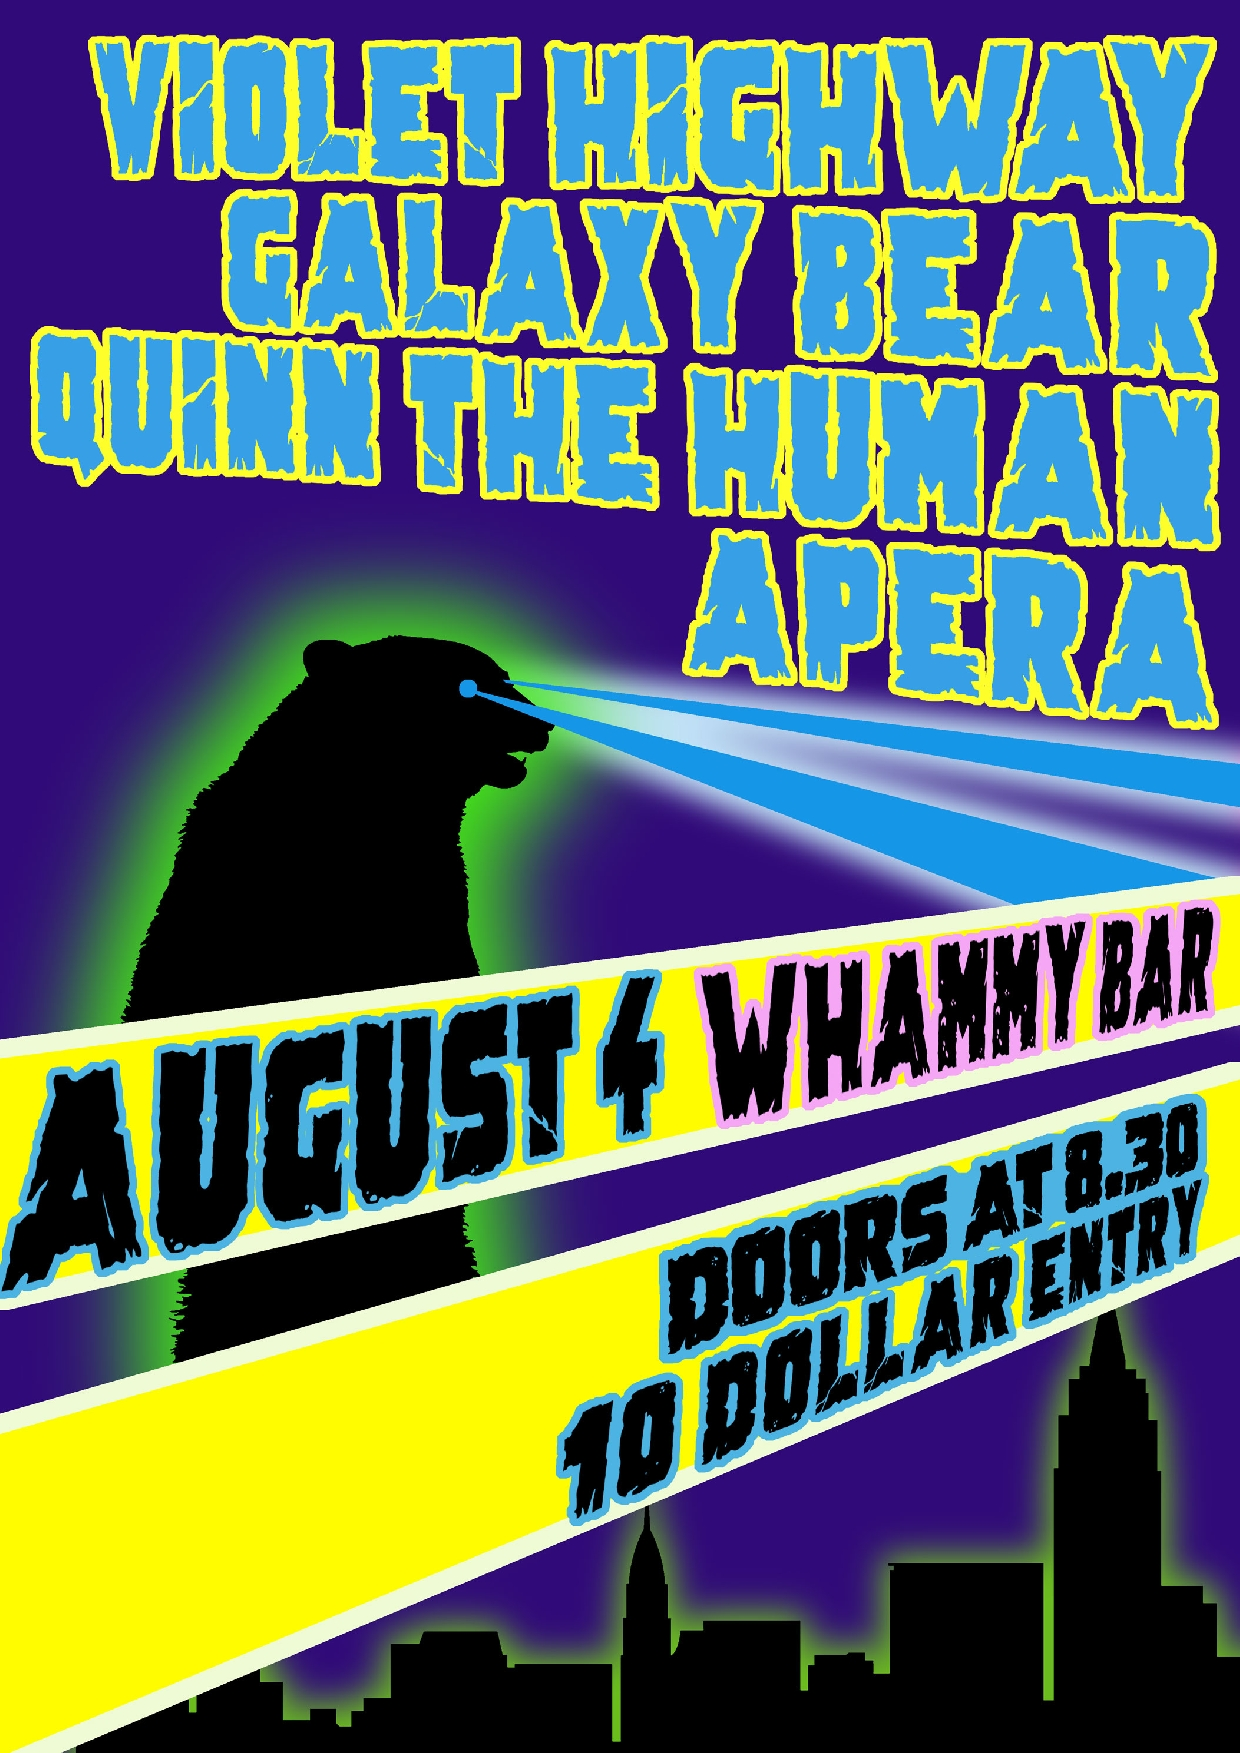 Violet Highway, Quinn The Human, Galaxy Bear and Apera